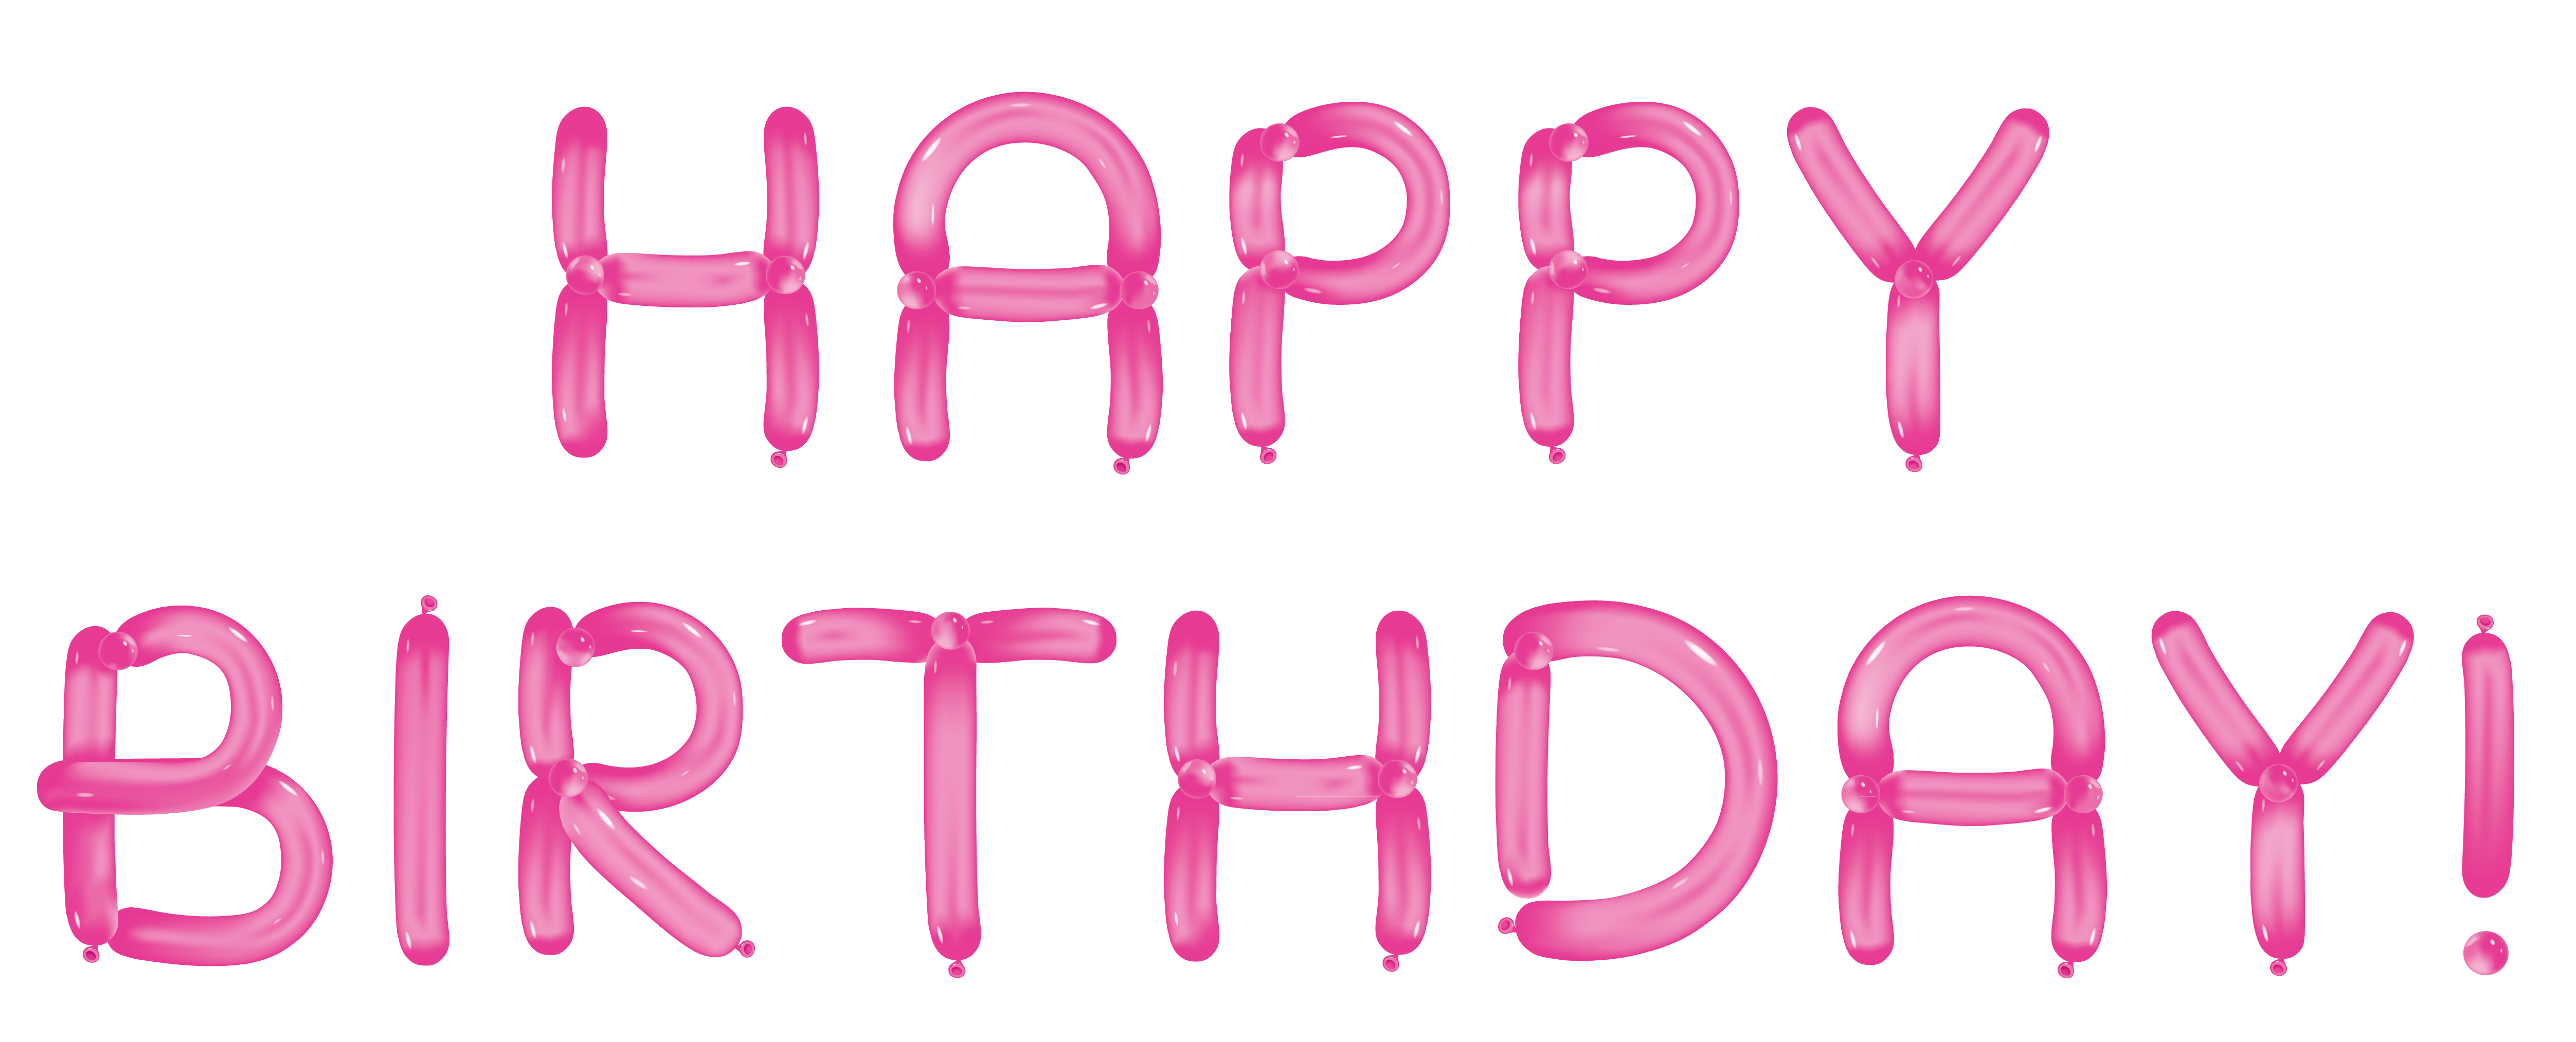 Happy with pink balloons. Clipart rose birthday